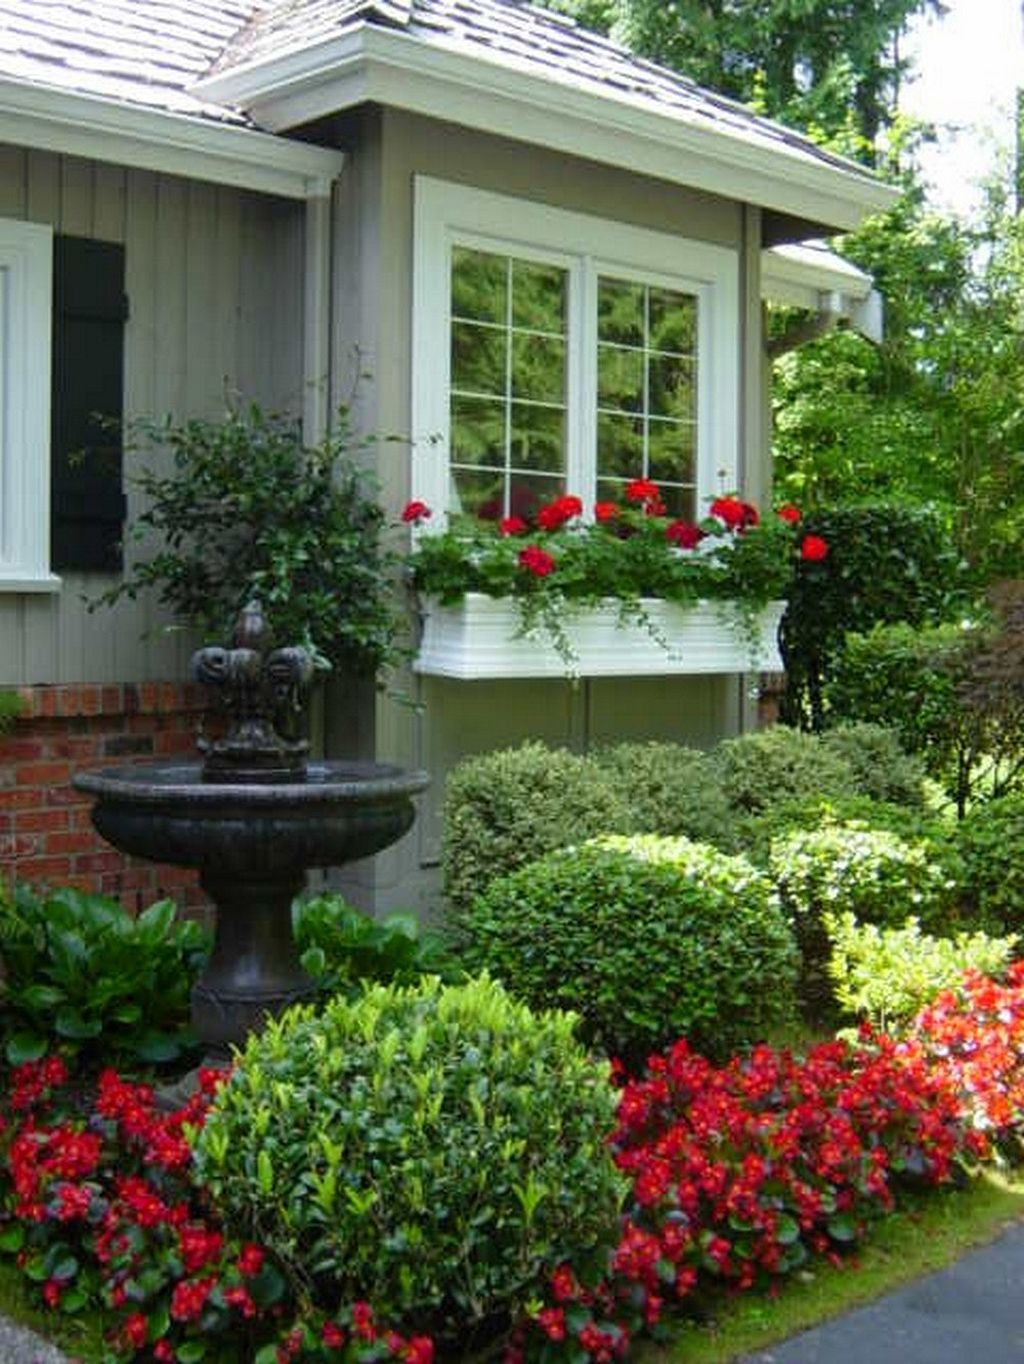 Landscaping Front Yard Ideas 25 | Small front yard ...